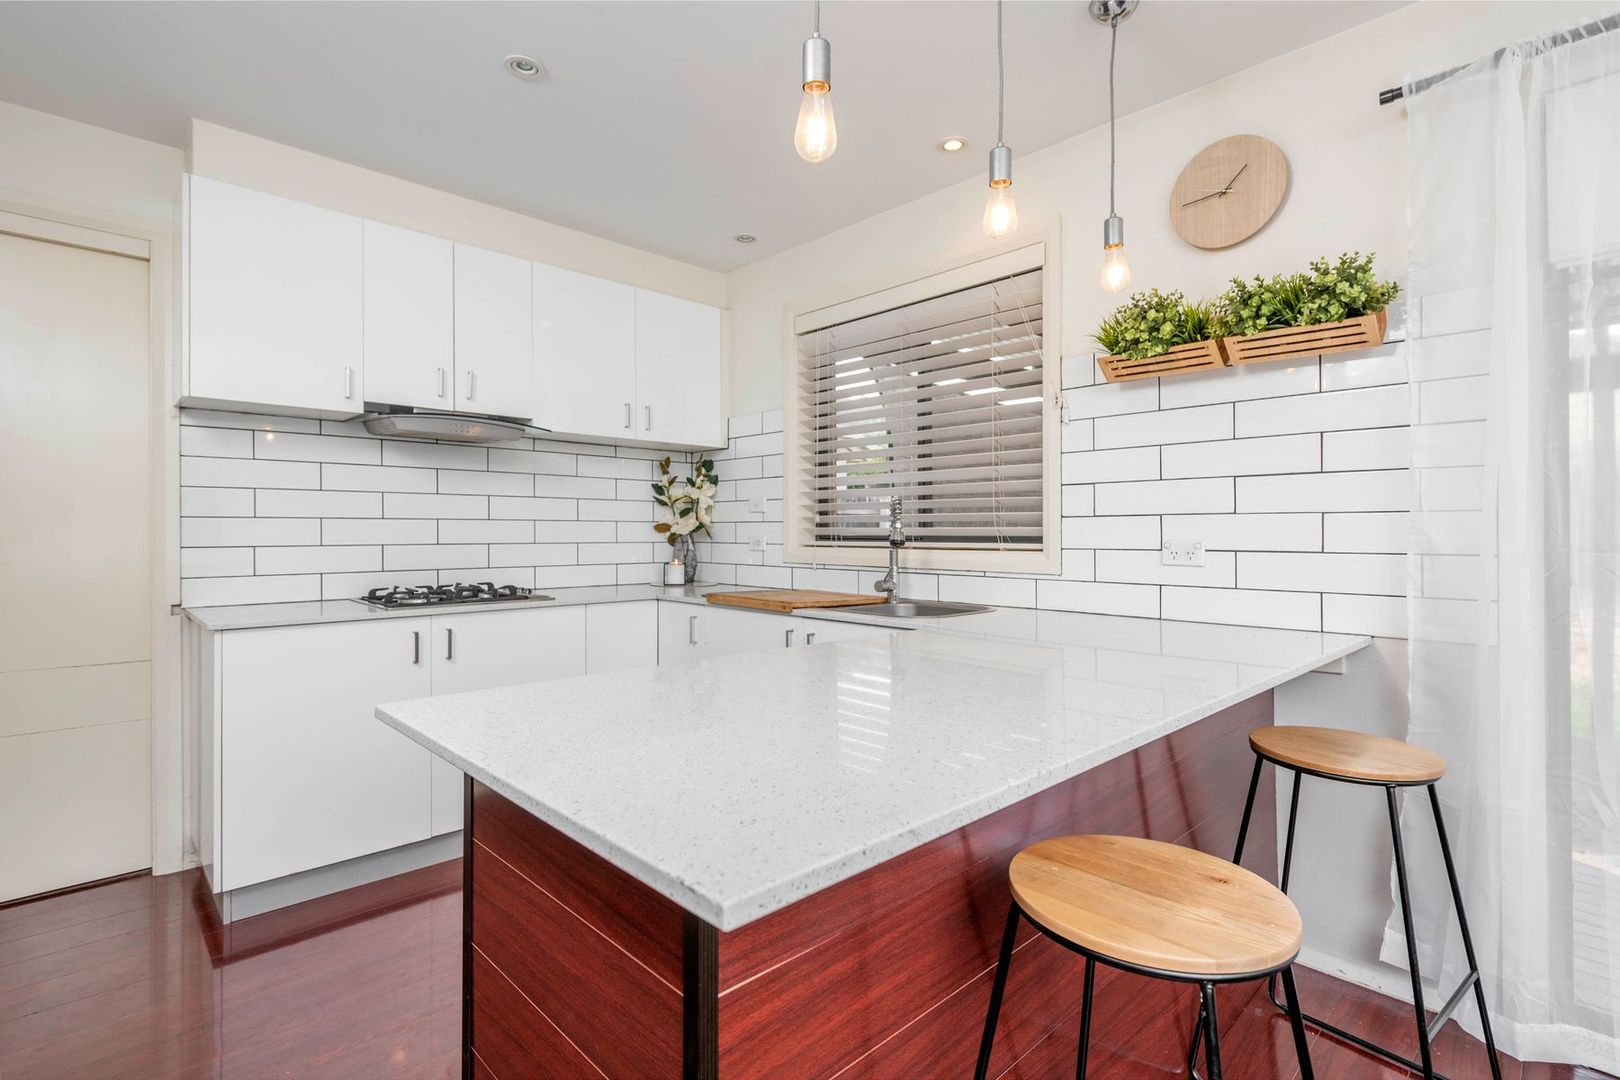 2/9 Coora Place, Jerrabomberra NSW 2619, Image 2